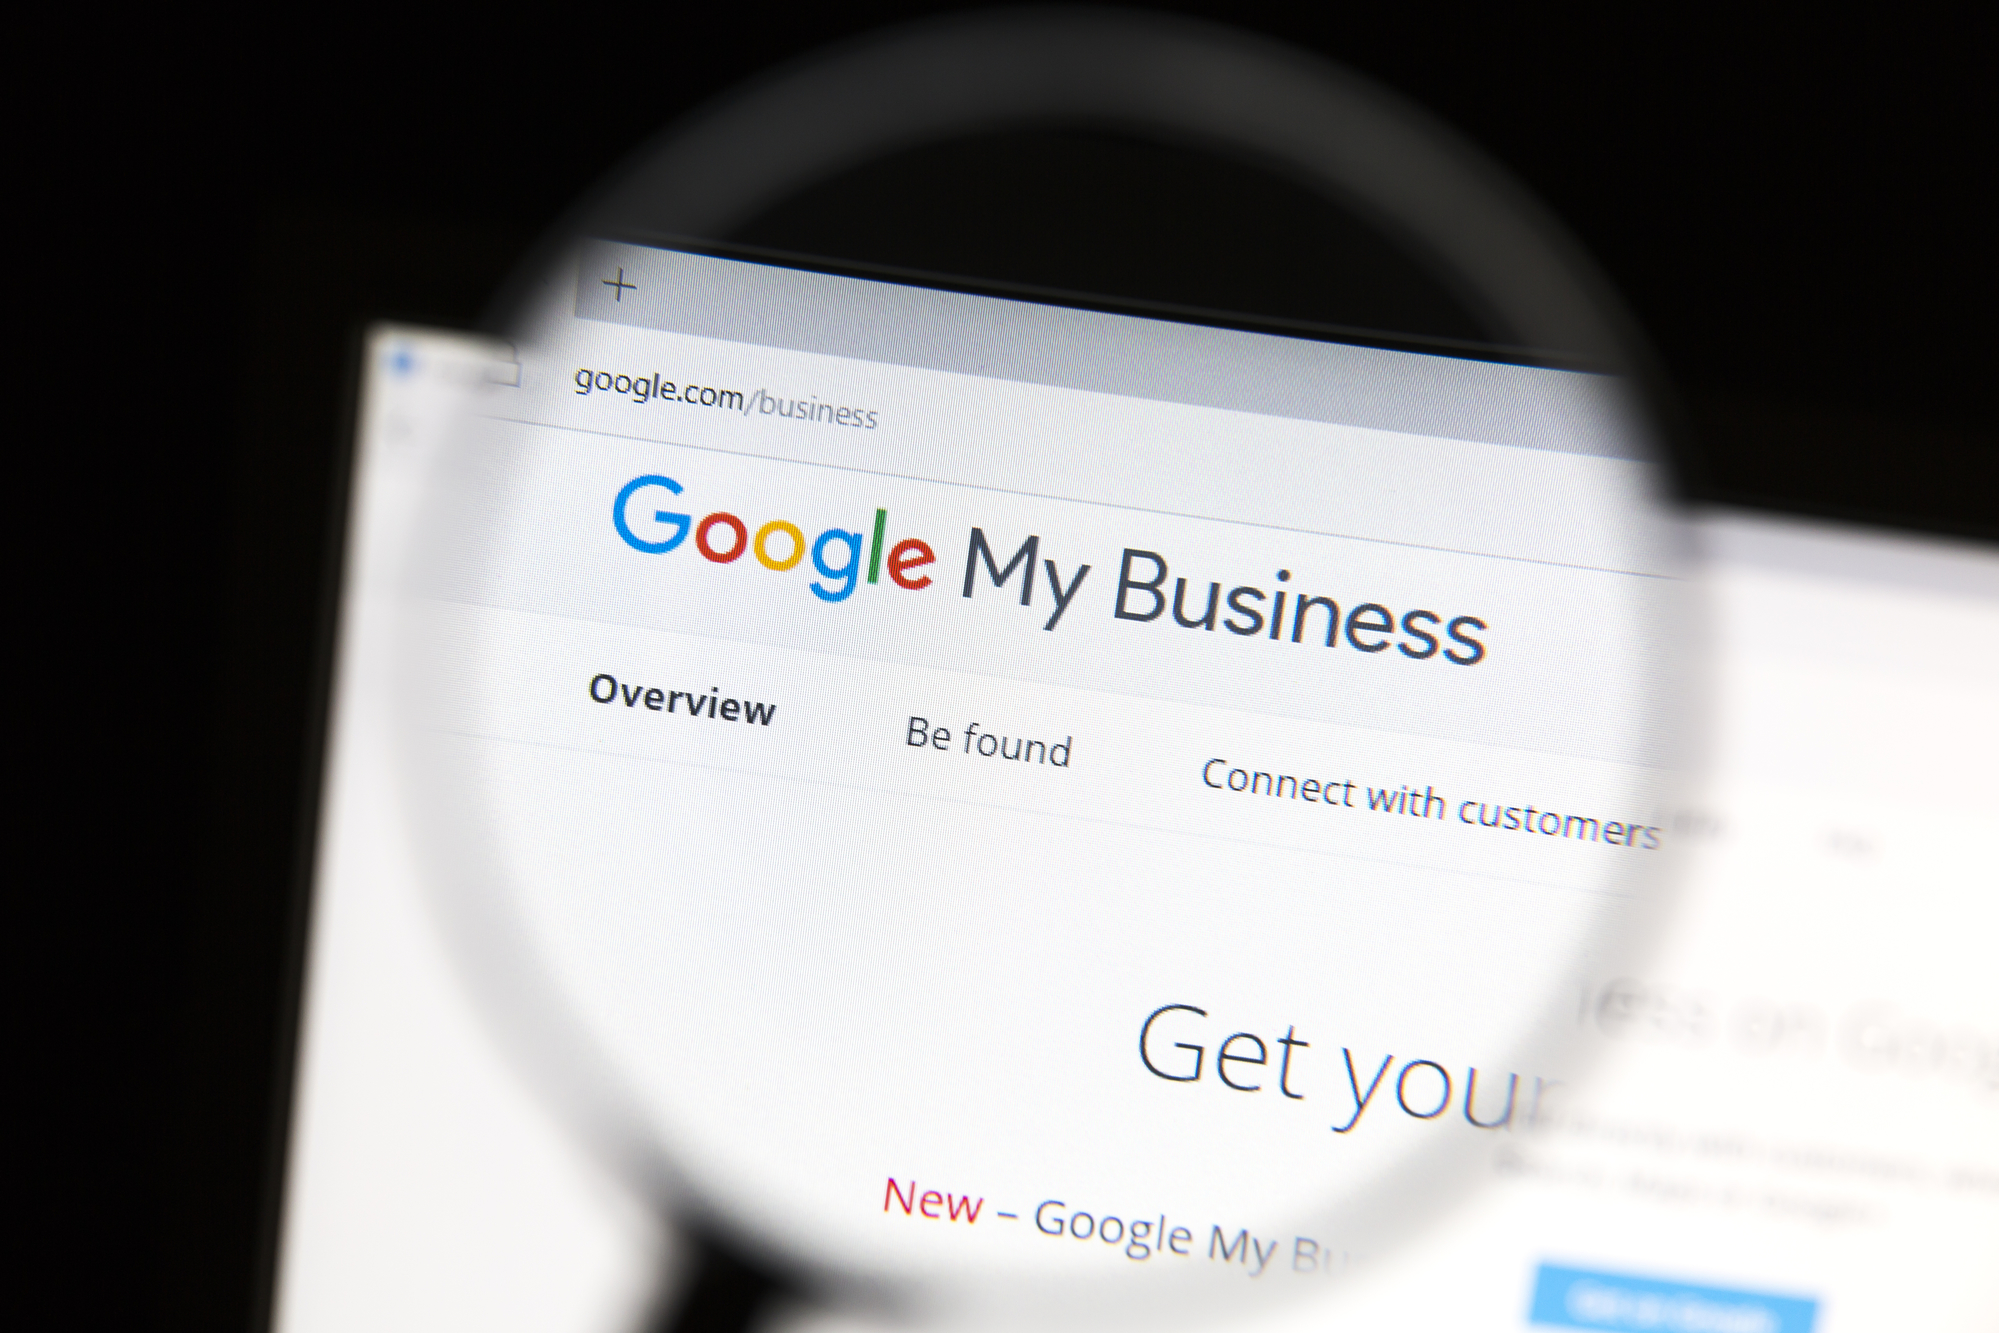 Closeup of wordpress website under a magnifying glass. Google My Business connects you directly with customers, whether they're looking for you on Search, Maps